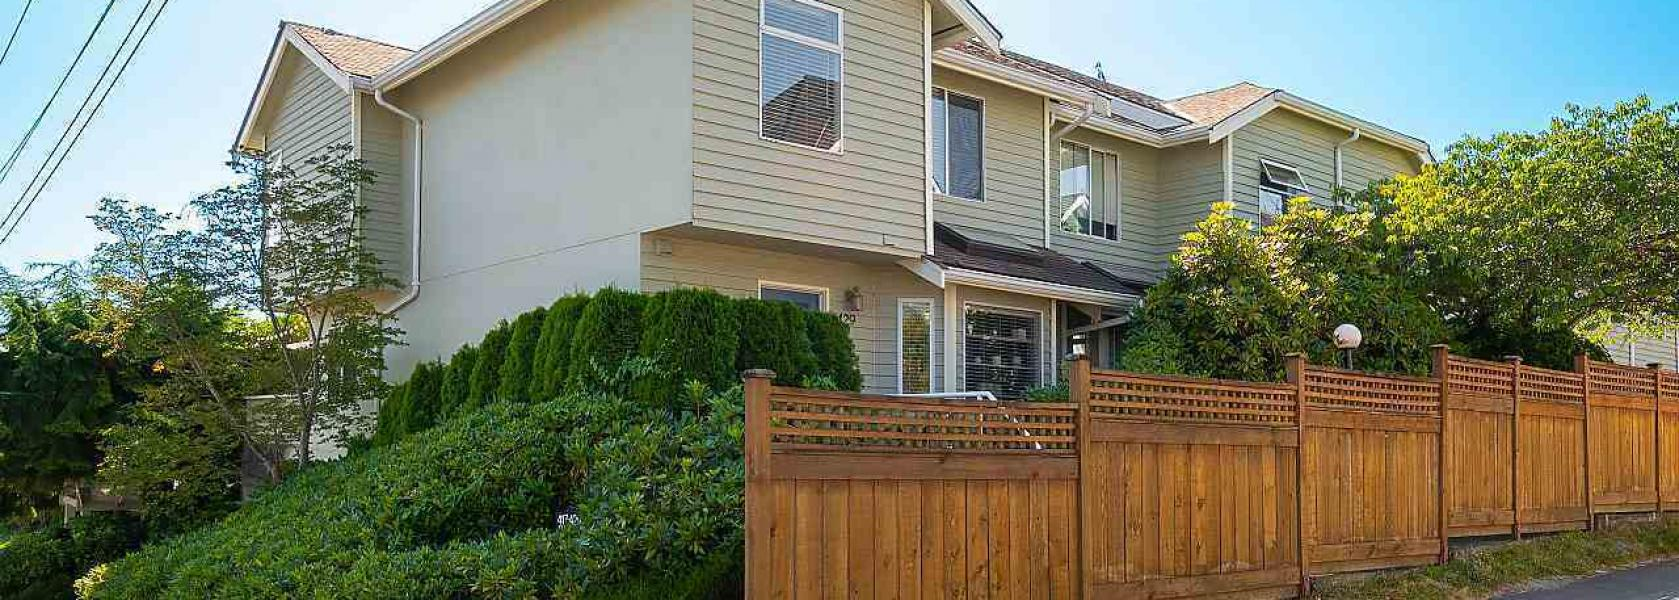 429 St. Andrews Avenue, Lower Lonsdale, North Vancouver